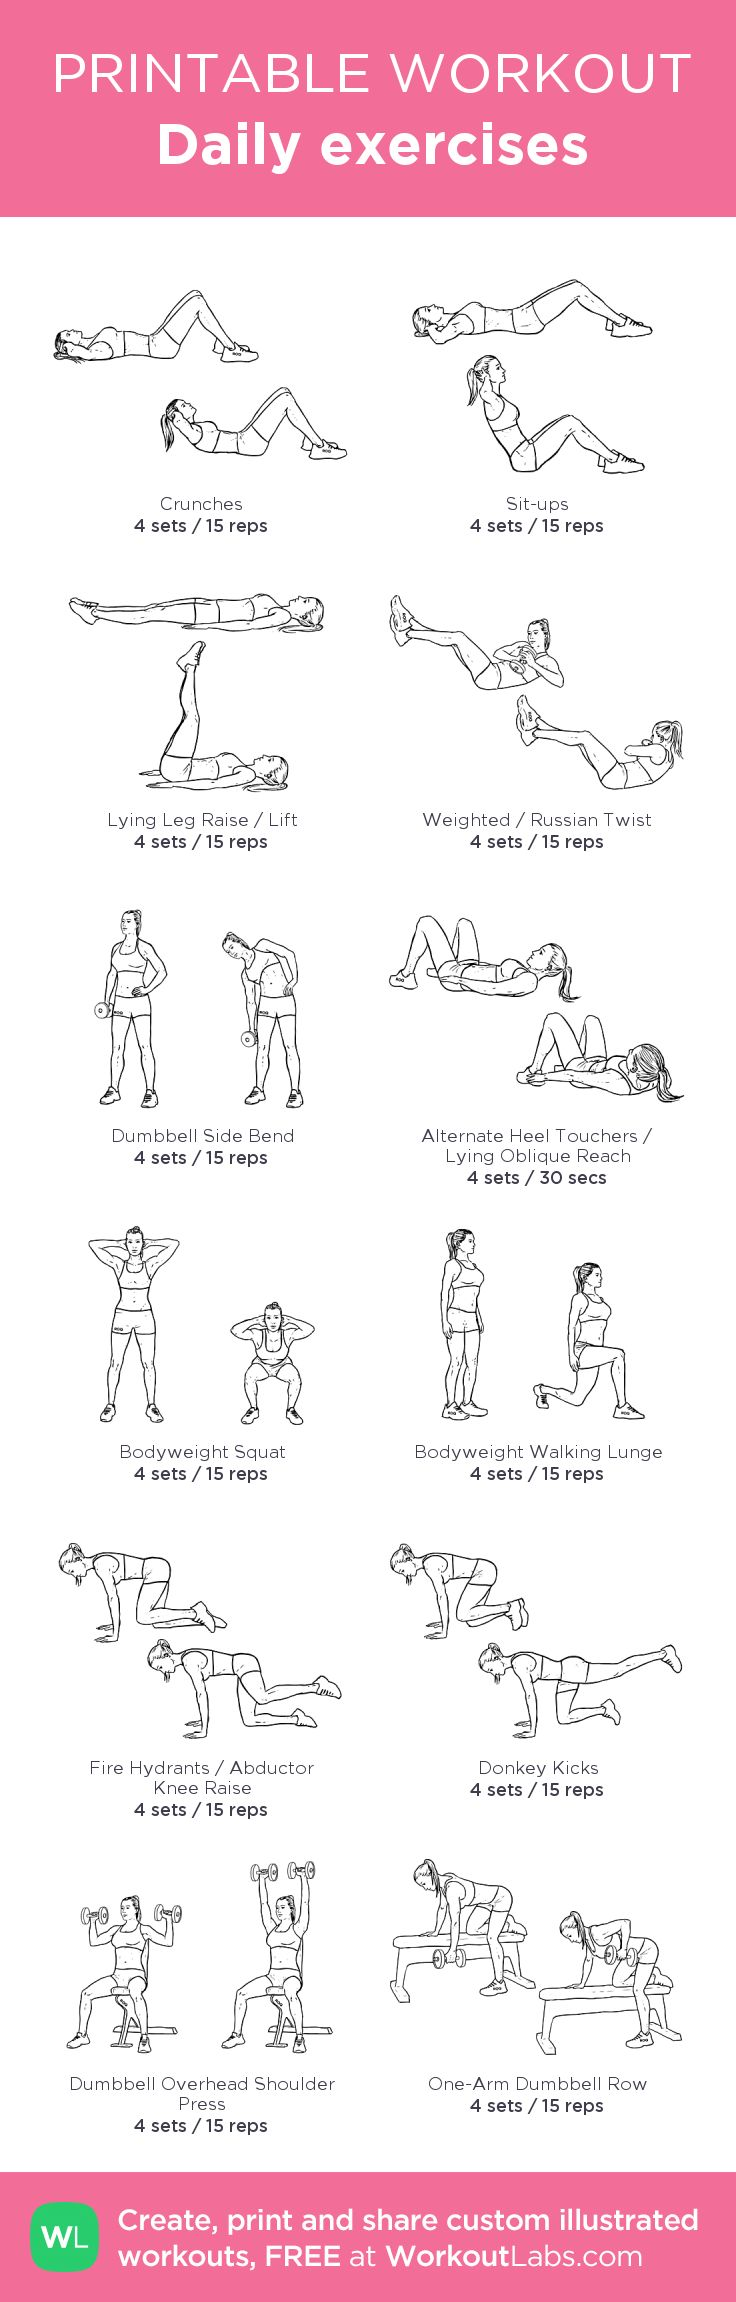 Daily exercises:my visual workout created at WorkoutLabs.com • Click through to customize and download as a FREE PDF! #customworkout